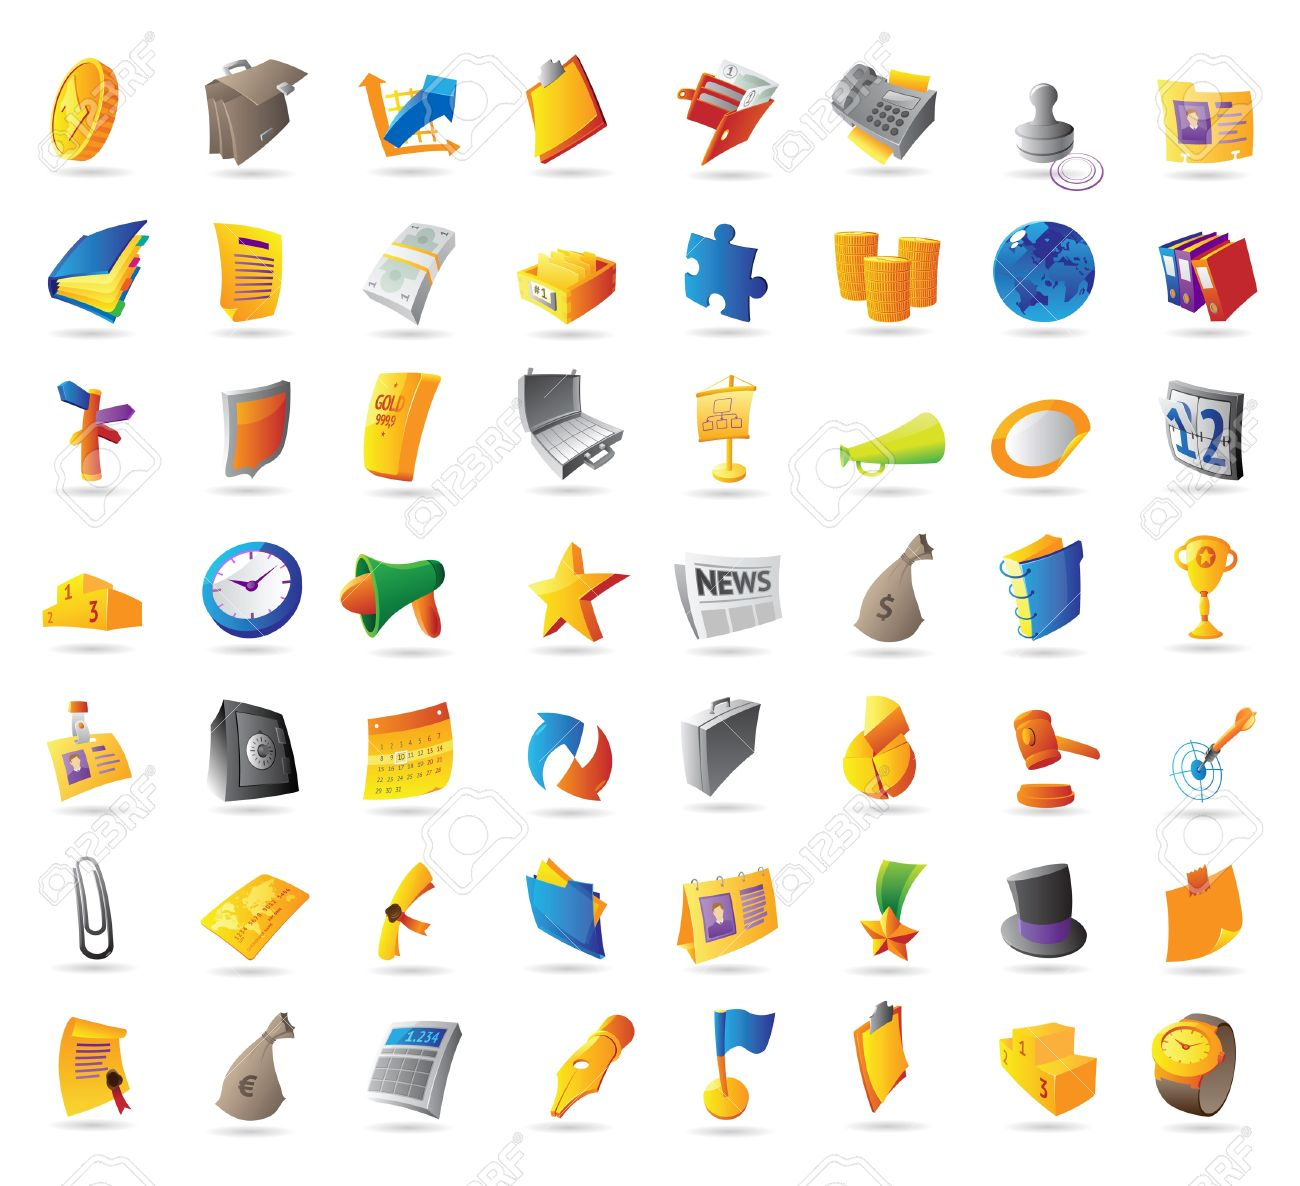 Icons for business, finance and office. Vector illustration. - 12885930